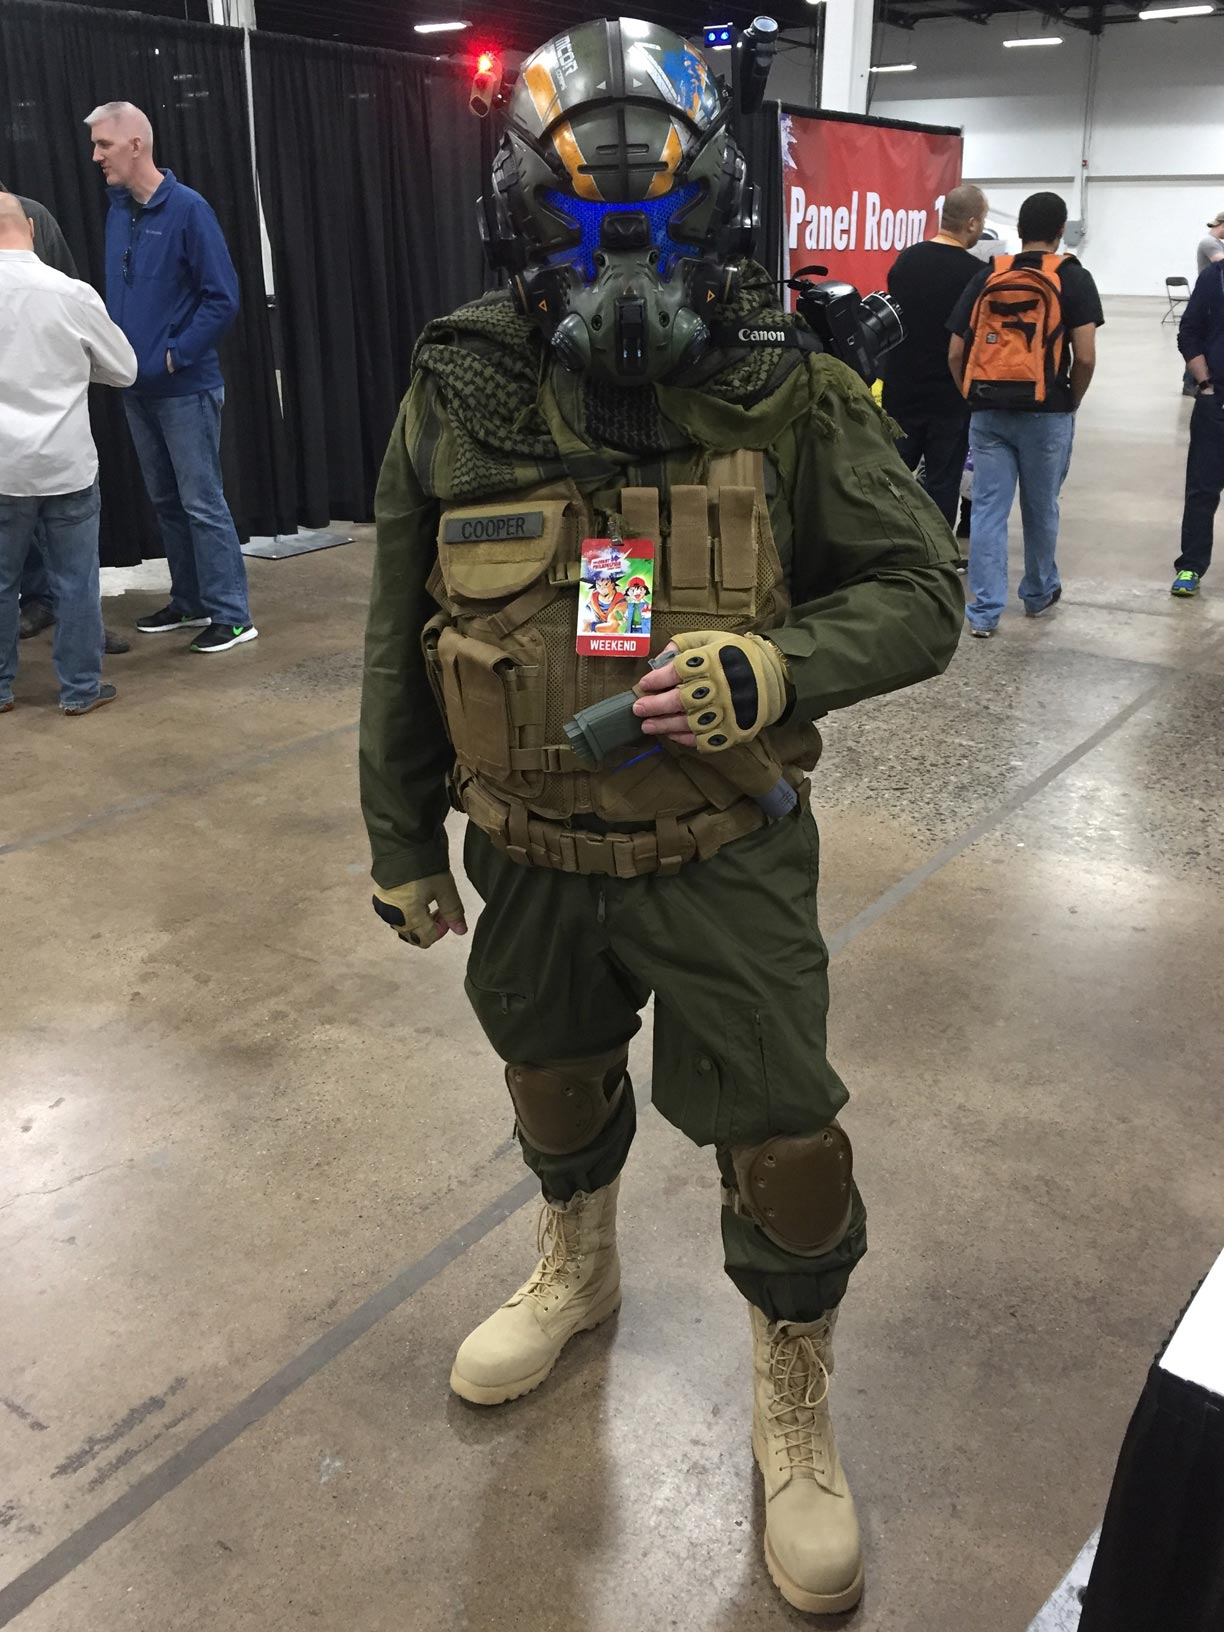 The Great Philadelphia Comic Con 2017 Cosplay Day 3 Titanfall Pilot